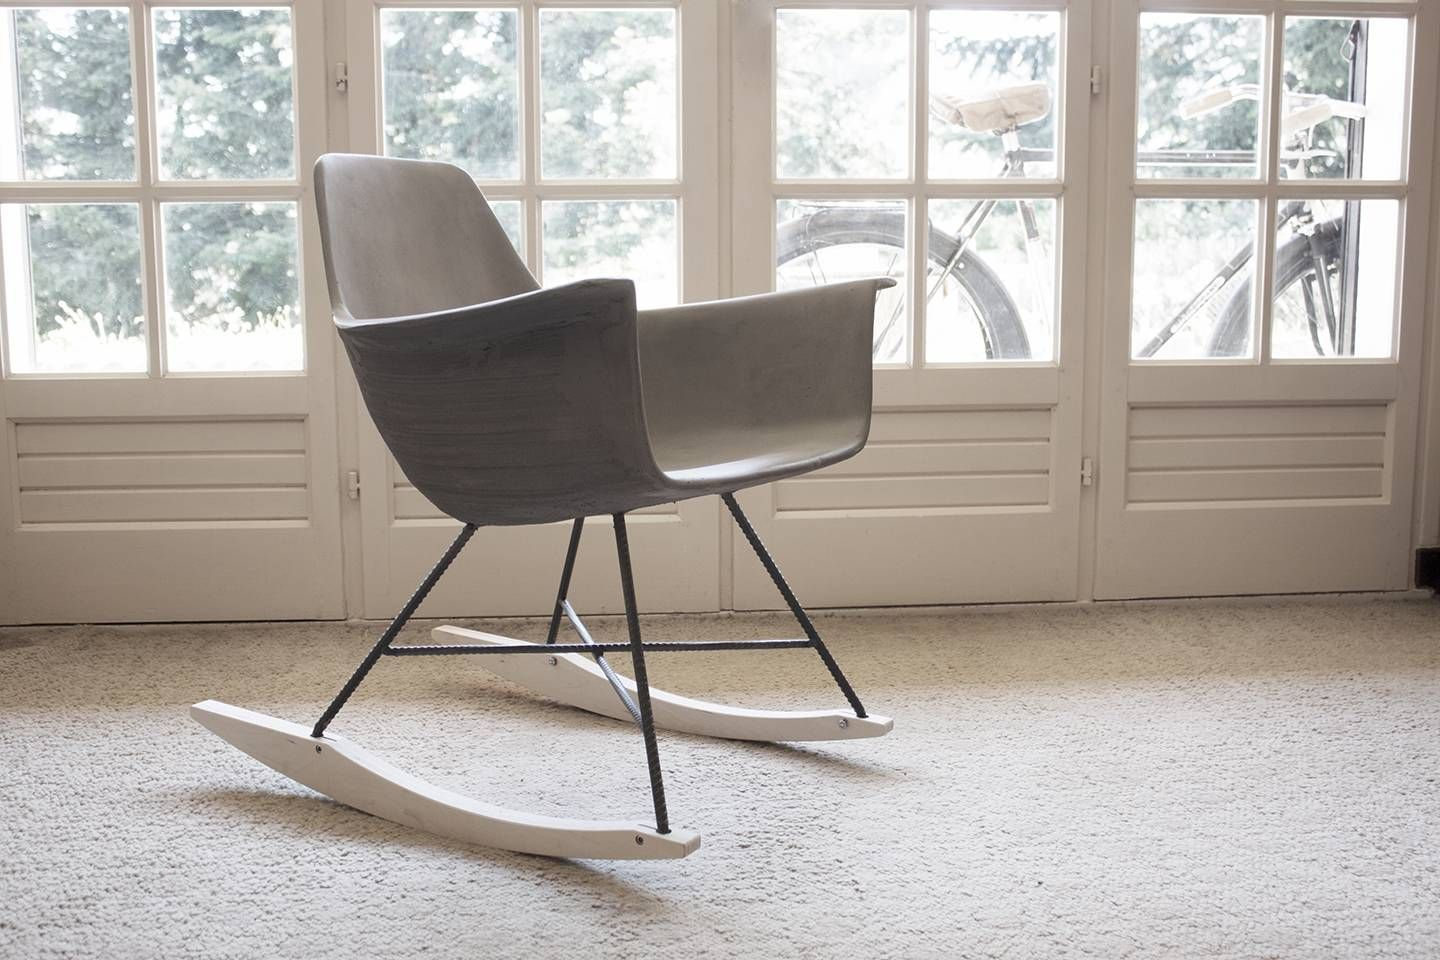 Fauteuils Story Hauteville Concrete Pinterest Rocking Chair Chair And